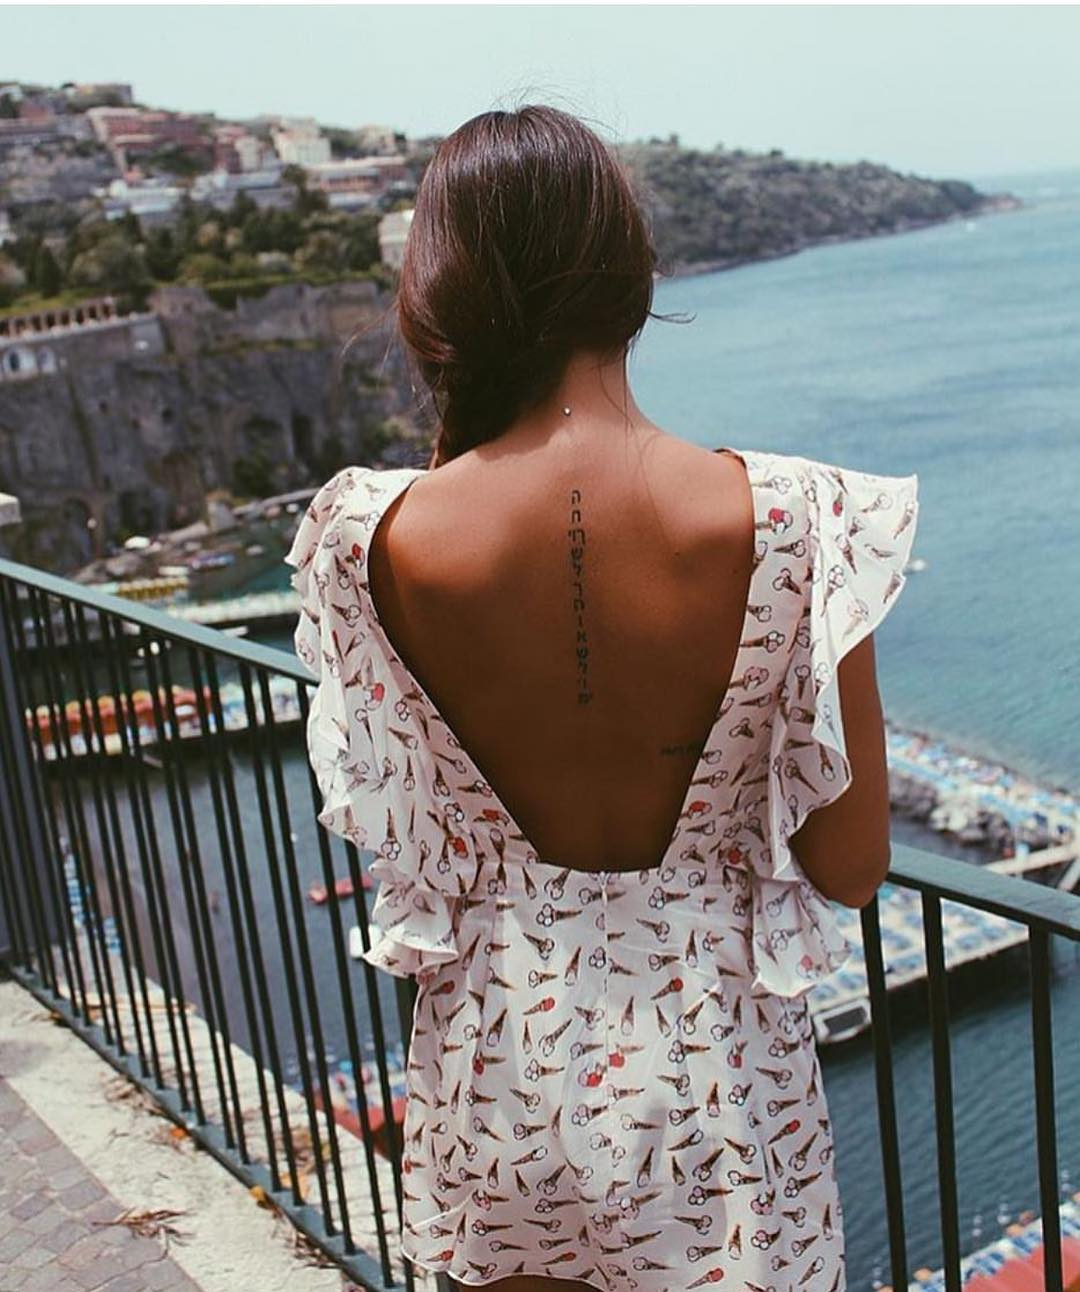 Open Back Dress In Ice Cream Print For Summer Vacation 2020